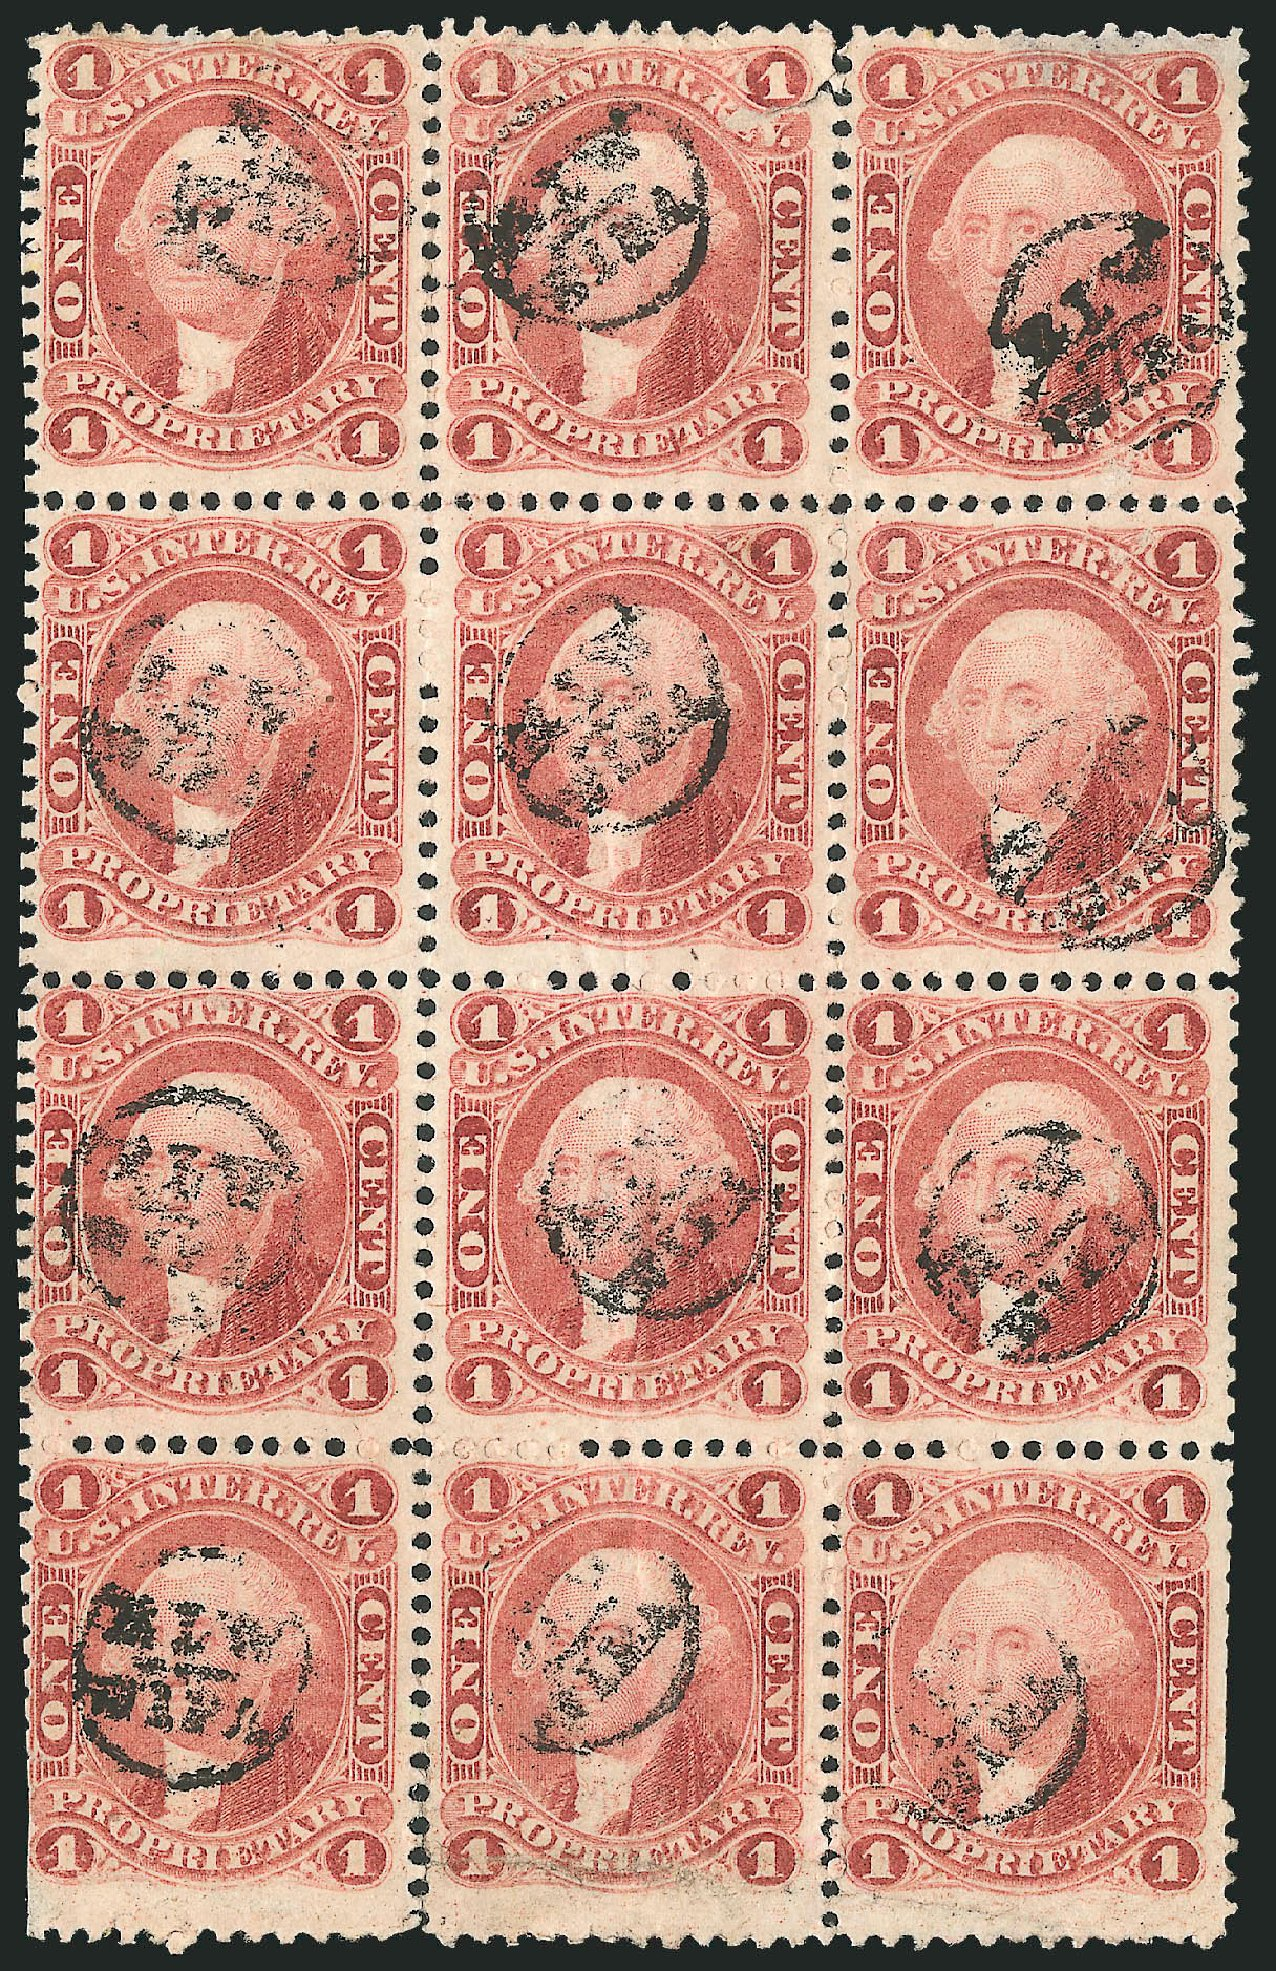 US Stamp Value Scott Catalogue # R3 - 1862 1c Revenue Proprietary. Robert Siegel Auction Galleries, Dec 2014, Sale 1089, Lot 453